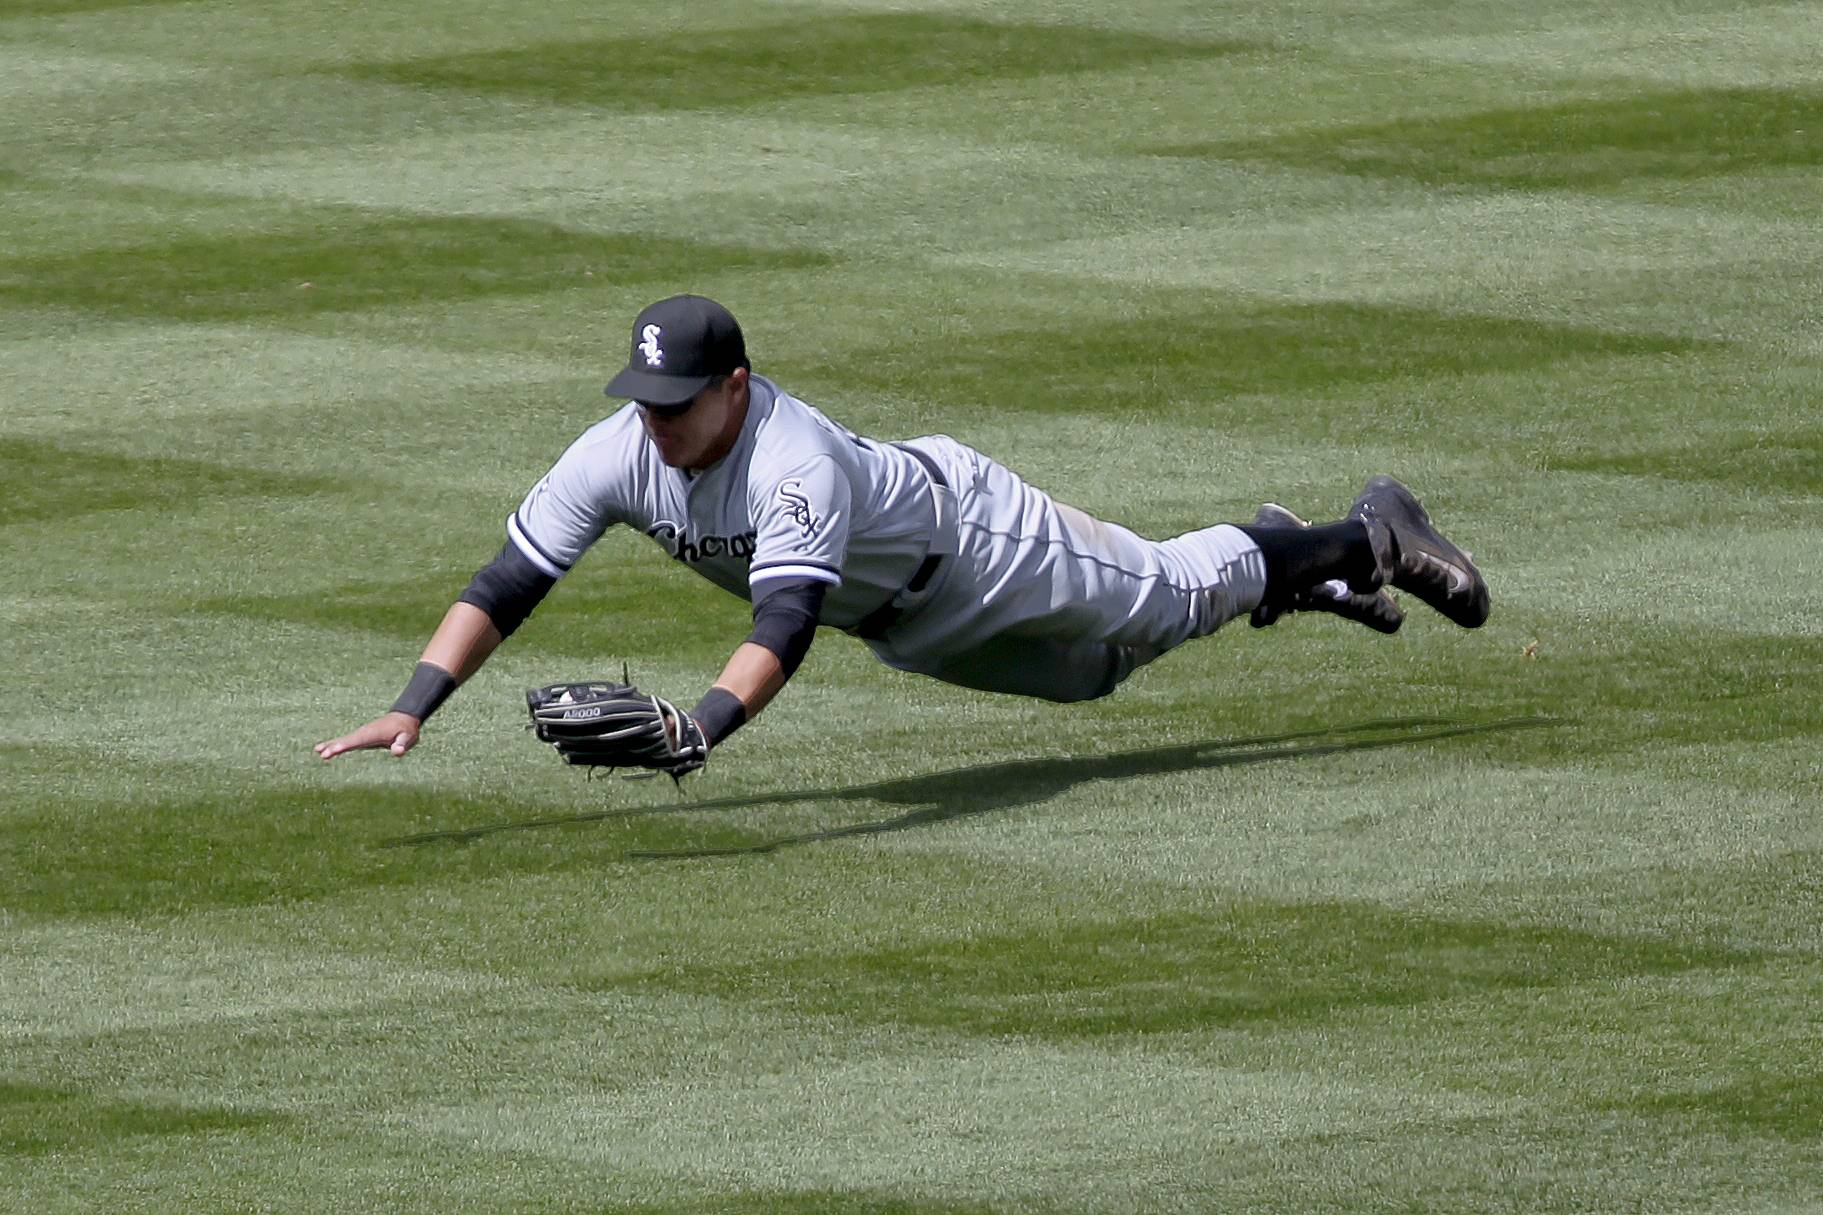 Garcia hurt as White Sox fall 10-4 to Rockies